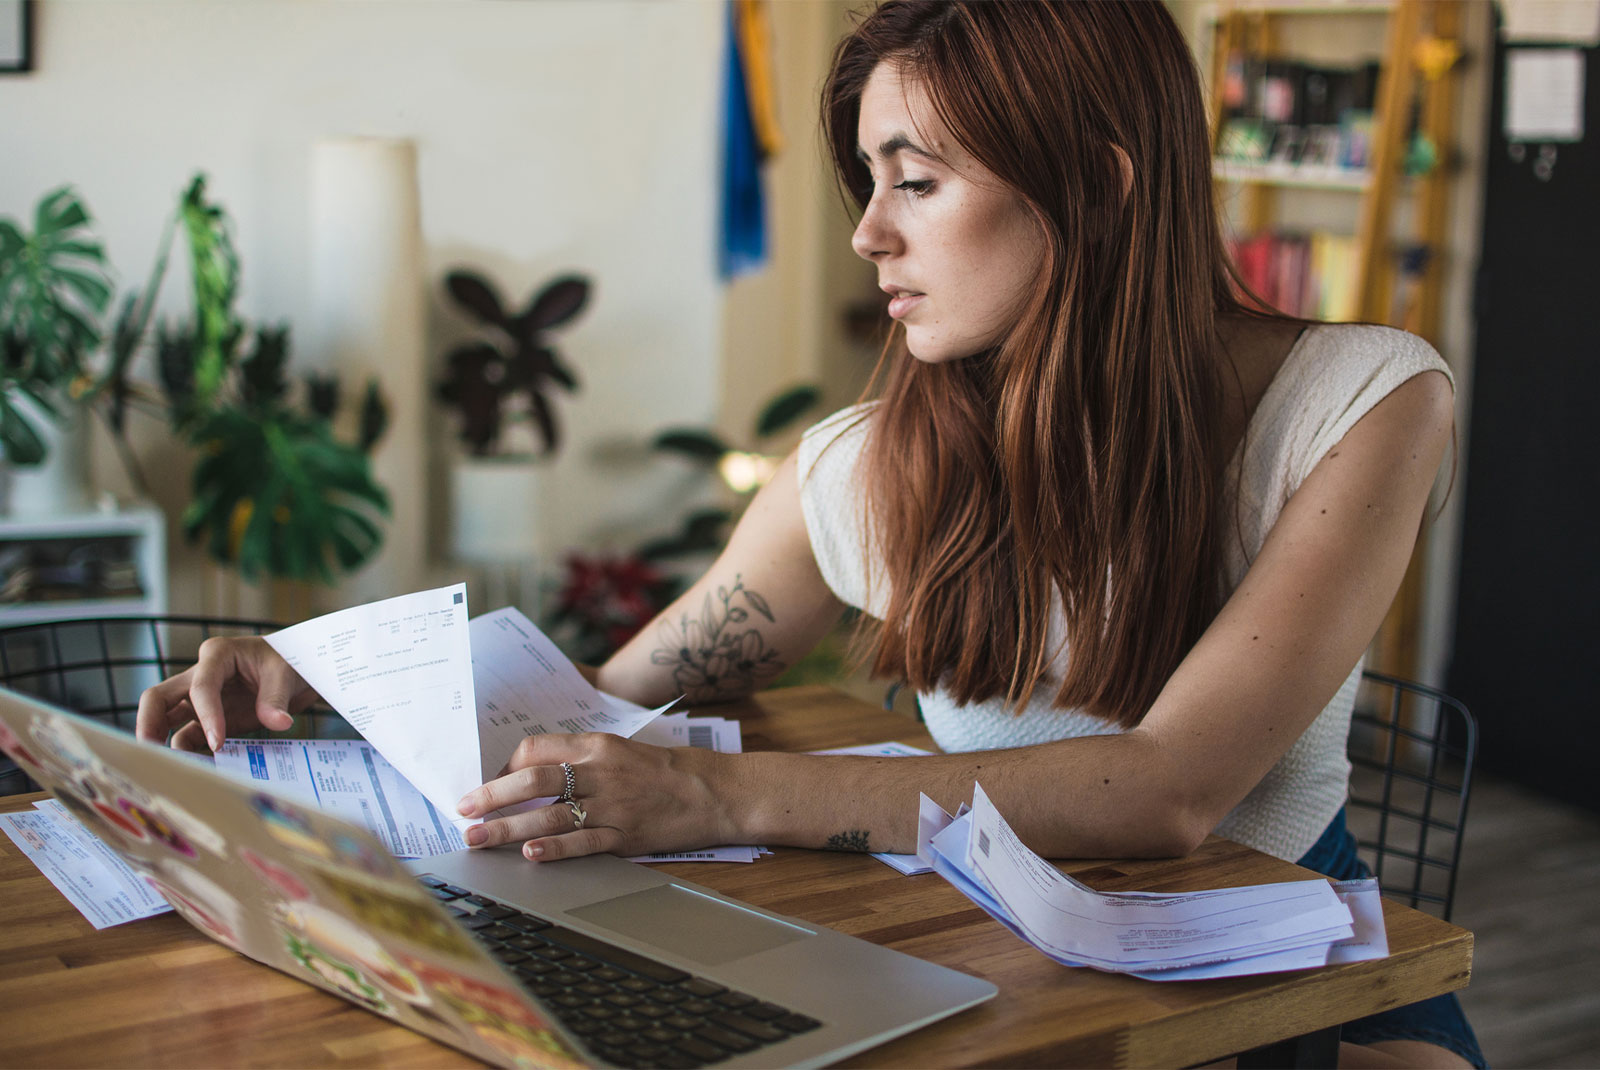 woman choosing a mortgage lender looking through papers and sitting at table